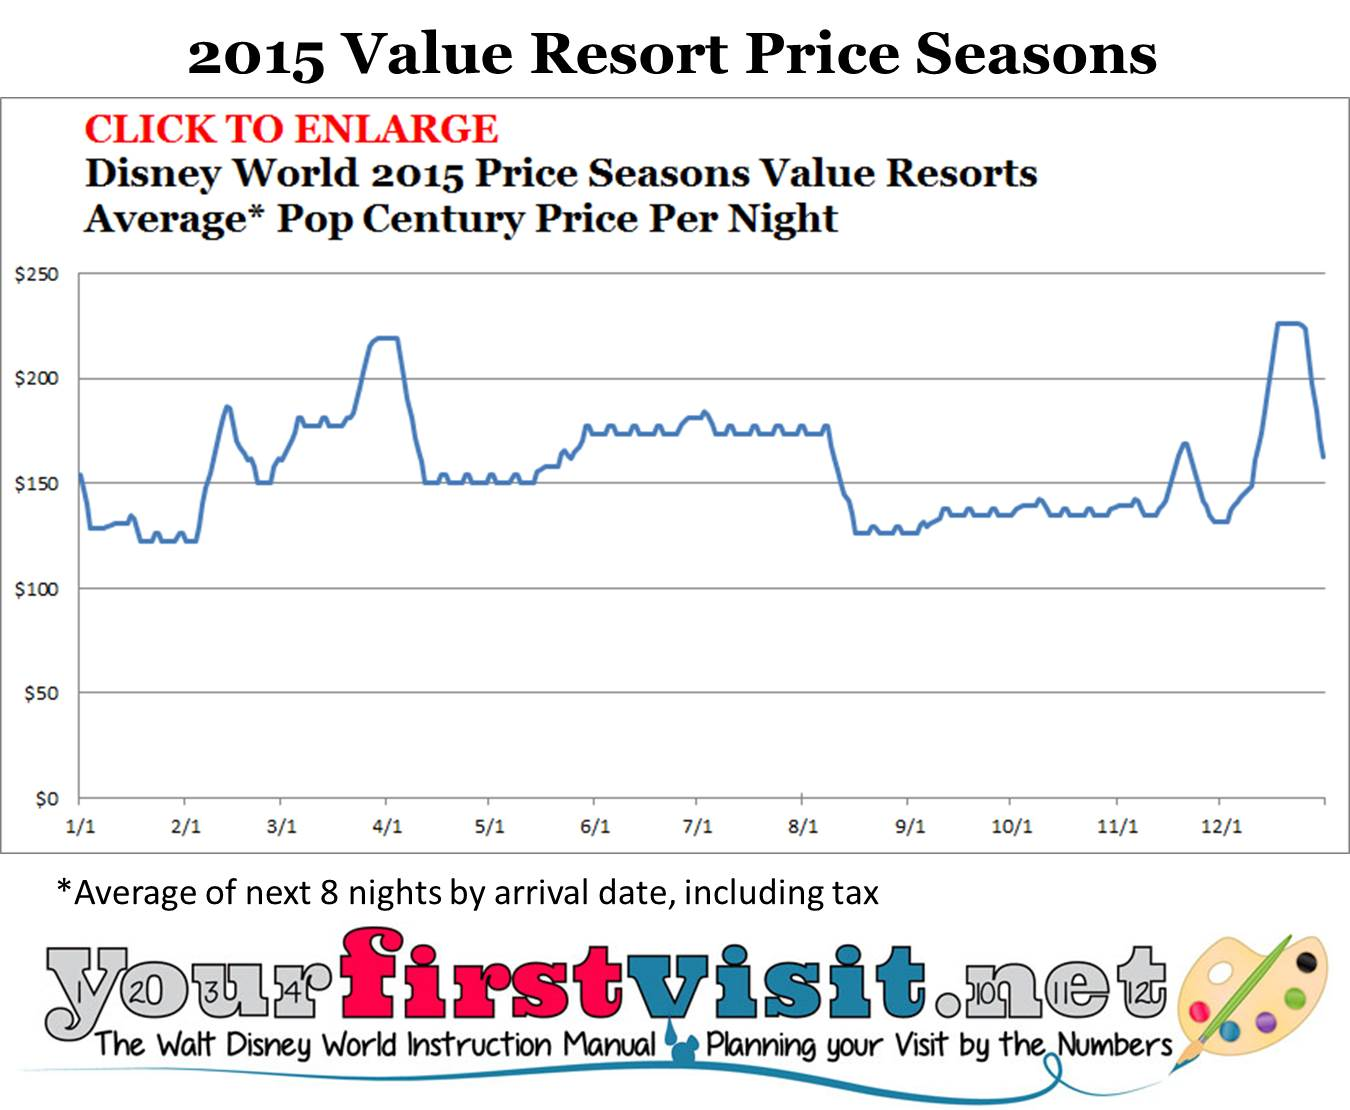 Disney World 2015 Value Resort Price Seasons from yourfirstvisit.net